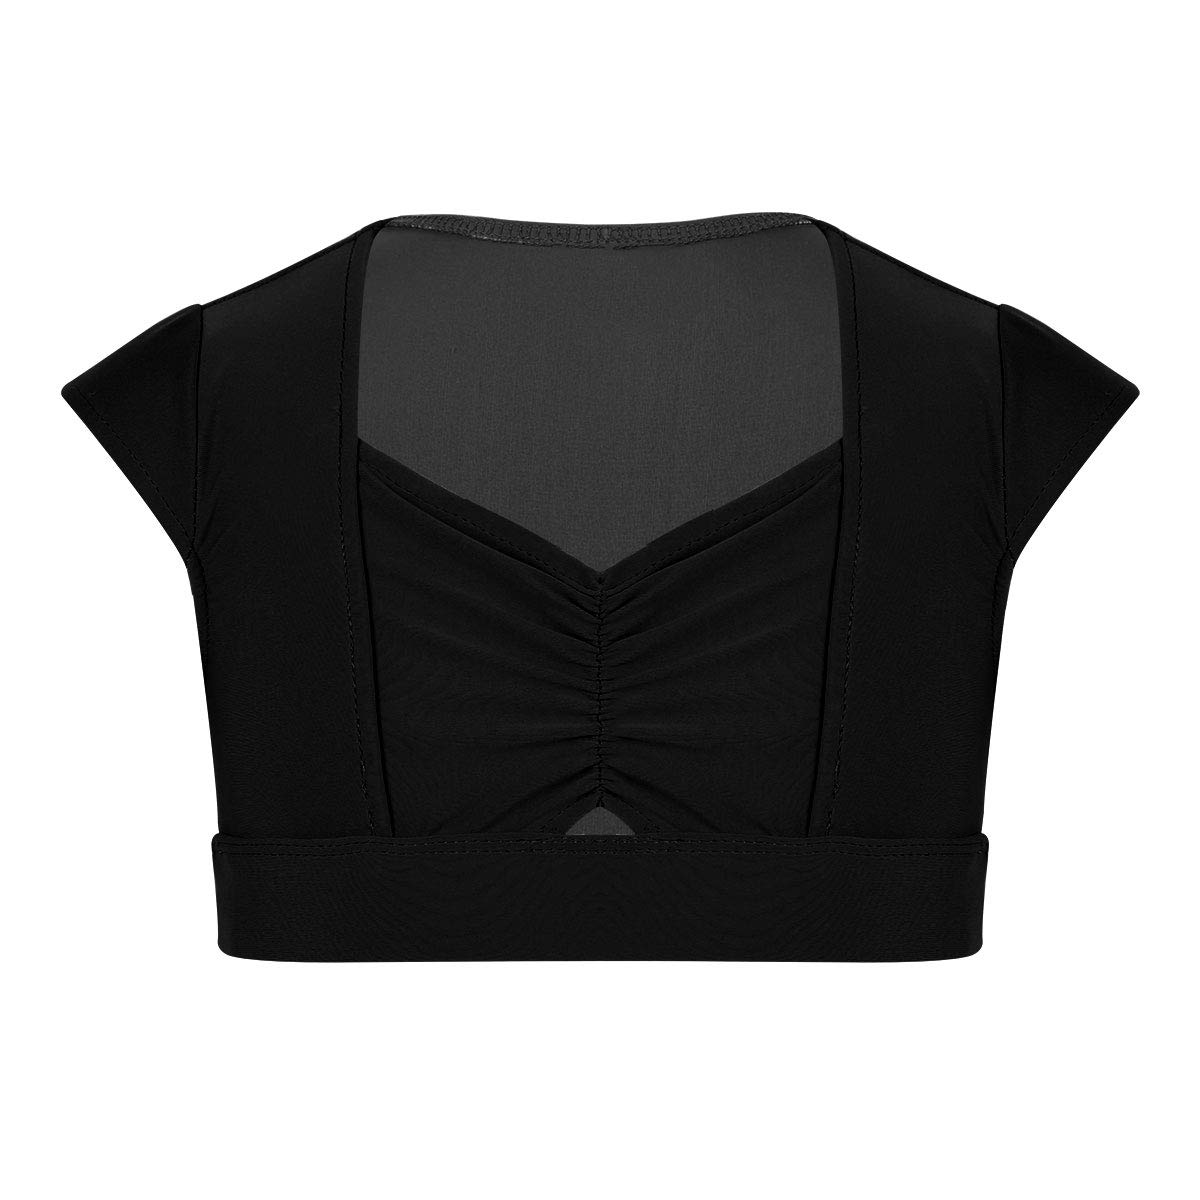 CHICTRY Kids Girls Dance Gymnastics Workout Sports Athletic Crop Top T-Shirt Tees Cap Sleeves Pinched-Front